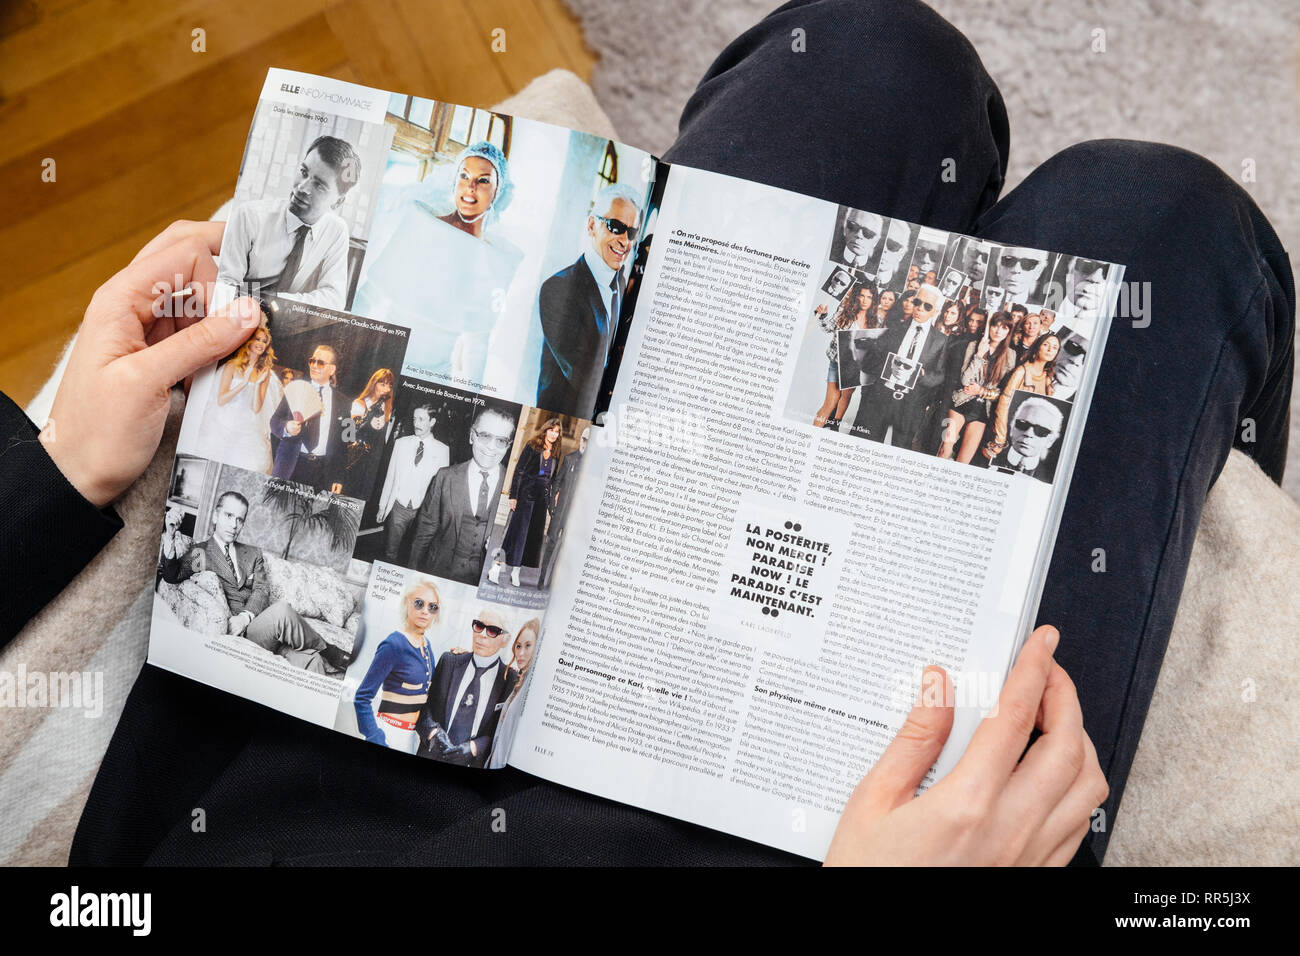 Paris France Feb 23 2019 Woman Reading French Magazine Covering Karl Lagerfeld Death Iconic Fashion Designer Died Aged 85 And Was Creative Director Paradise Now Article Stock Photo Alamy